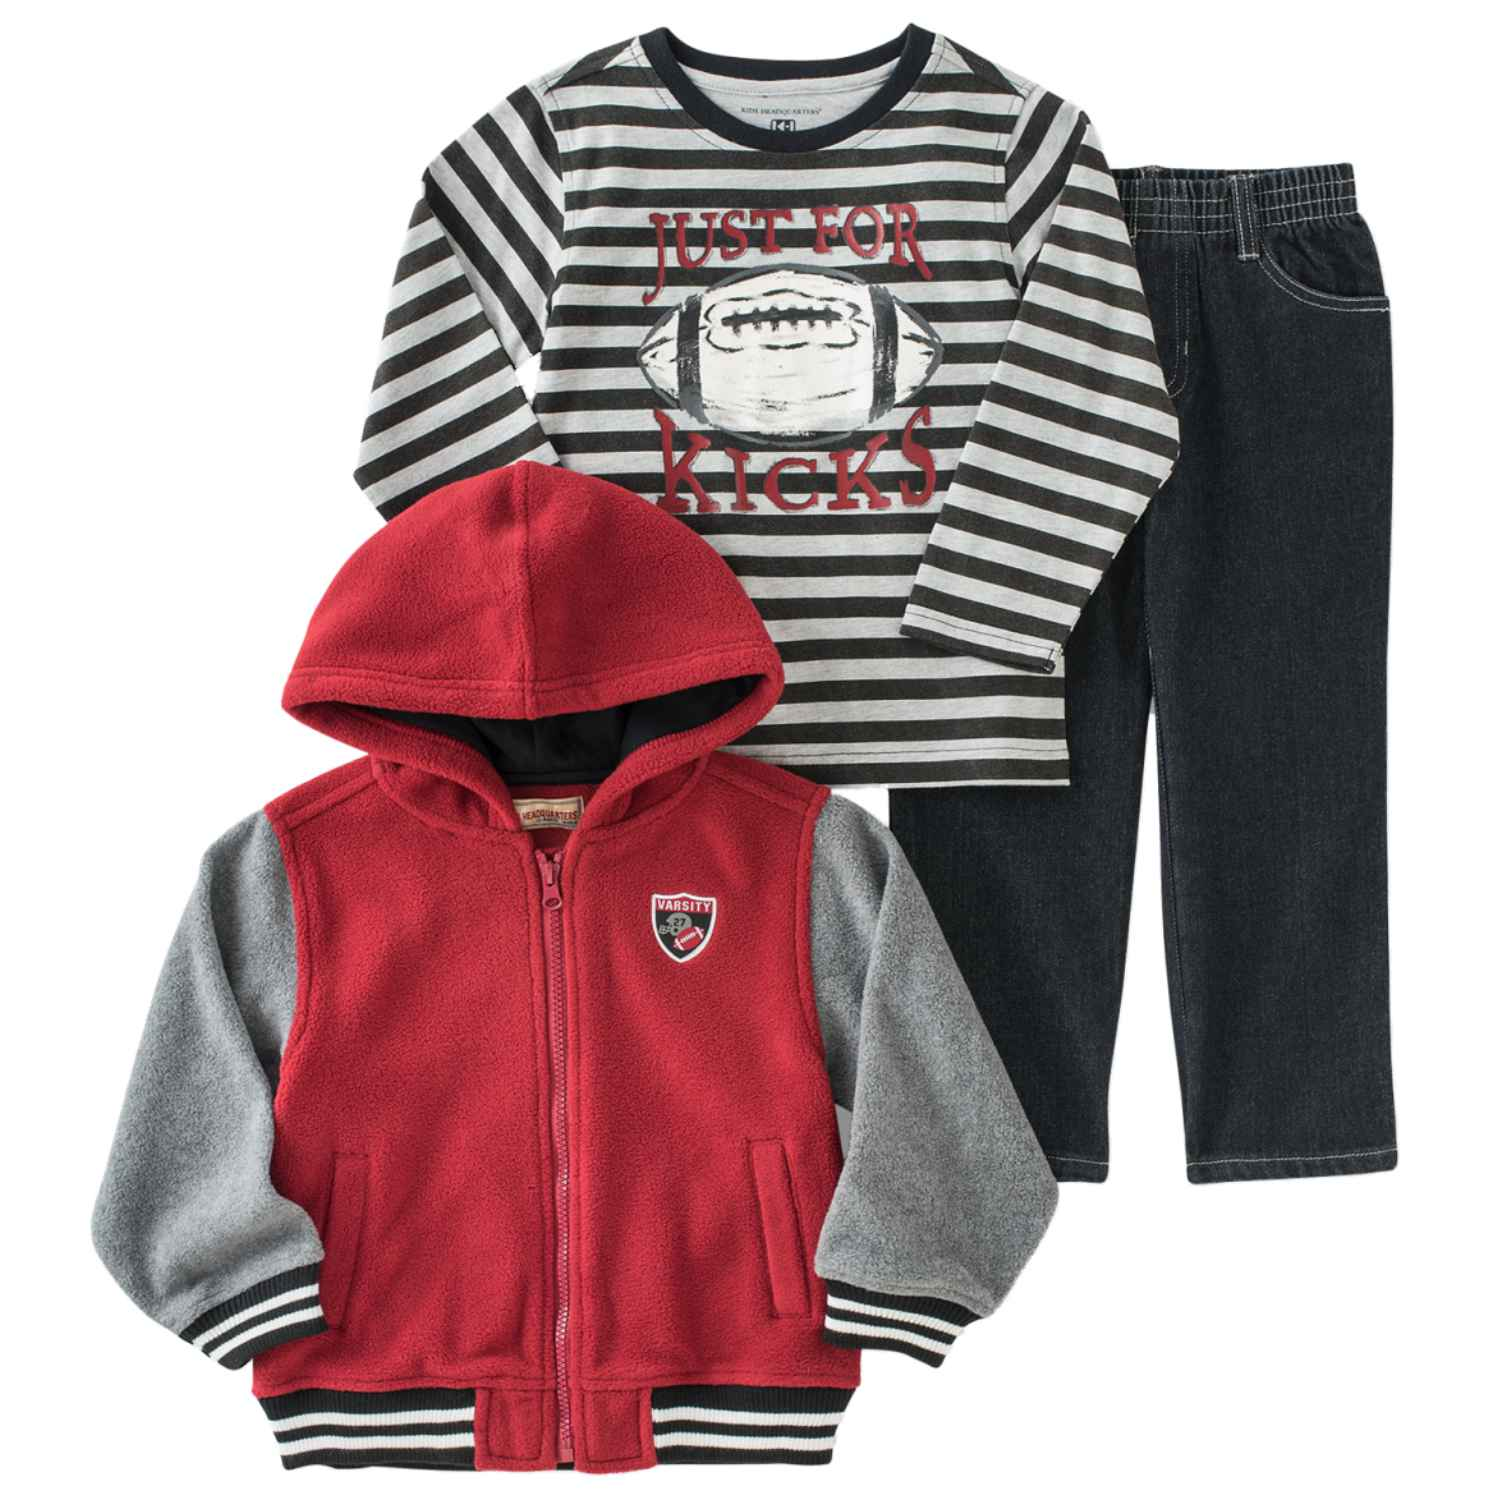 Kids Headquarters Infant Boys 3-Piece Football Outfit Jacket Shirt & Pants